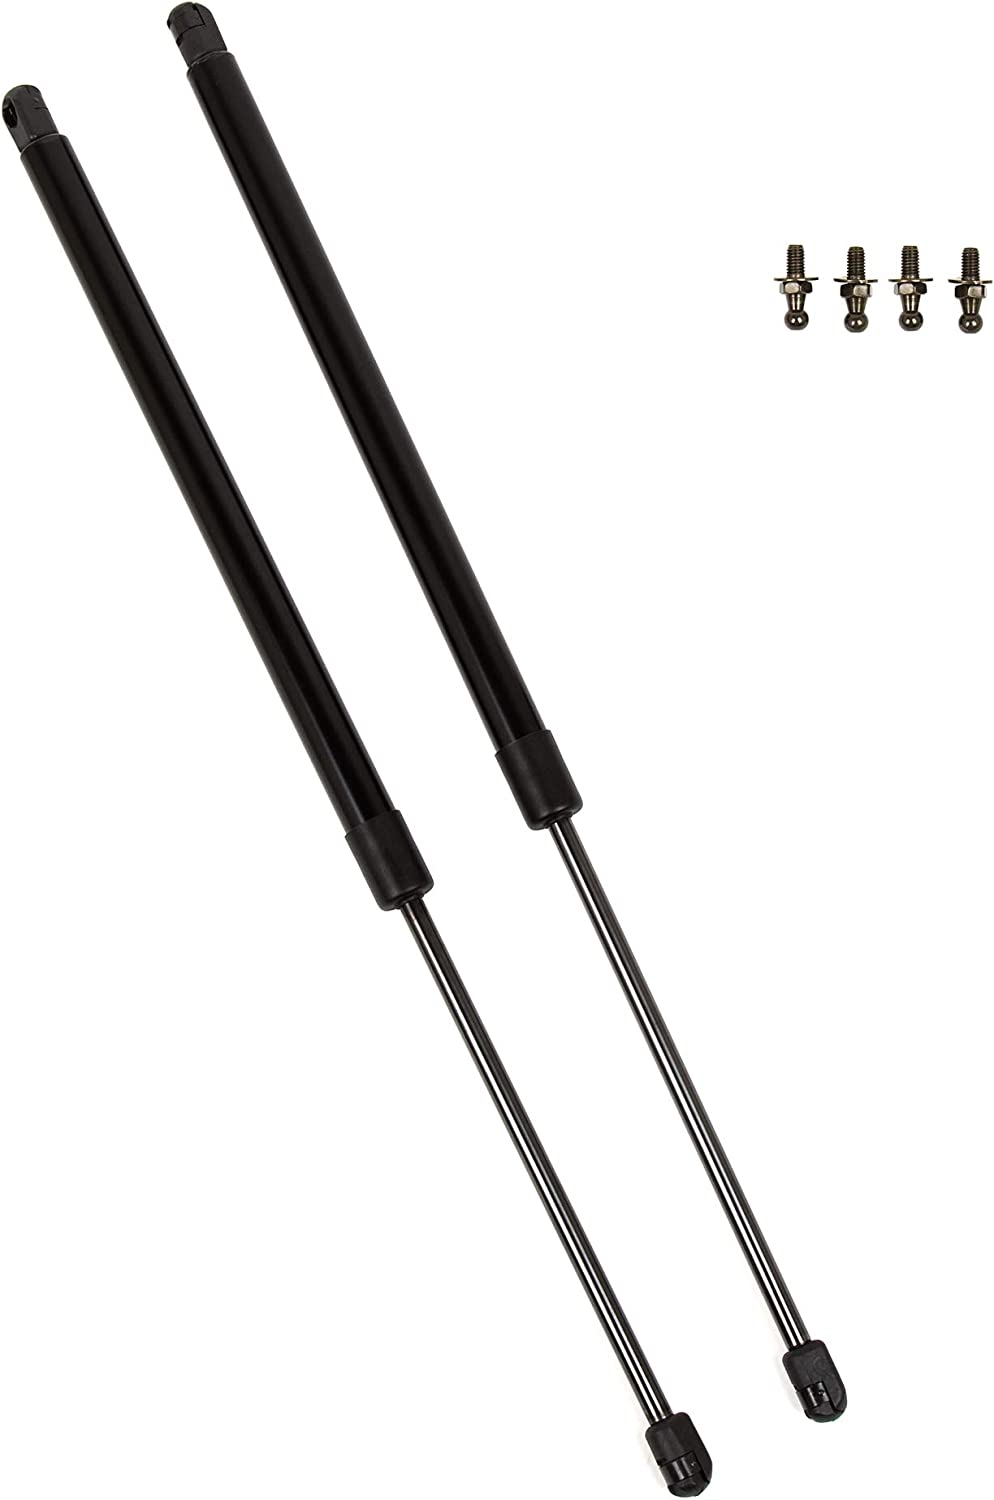 Evergreen E10031 2pcs SG230035 Rear Tailgate Lift Supports Struts For Chevy Suburban /& Tahoe